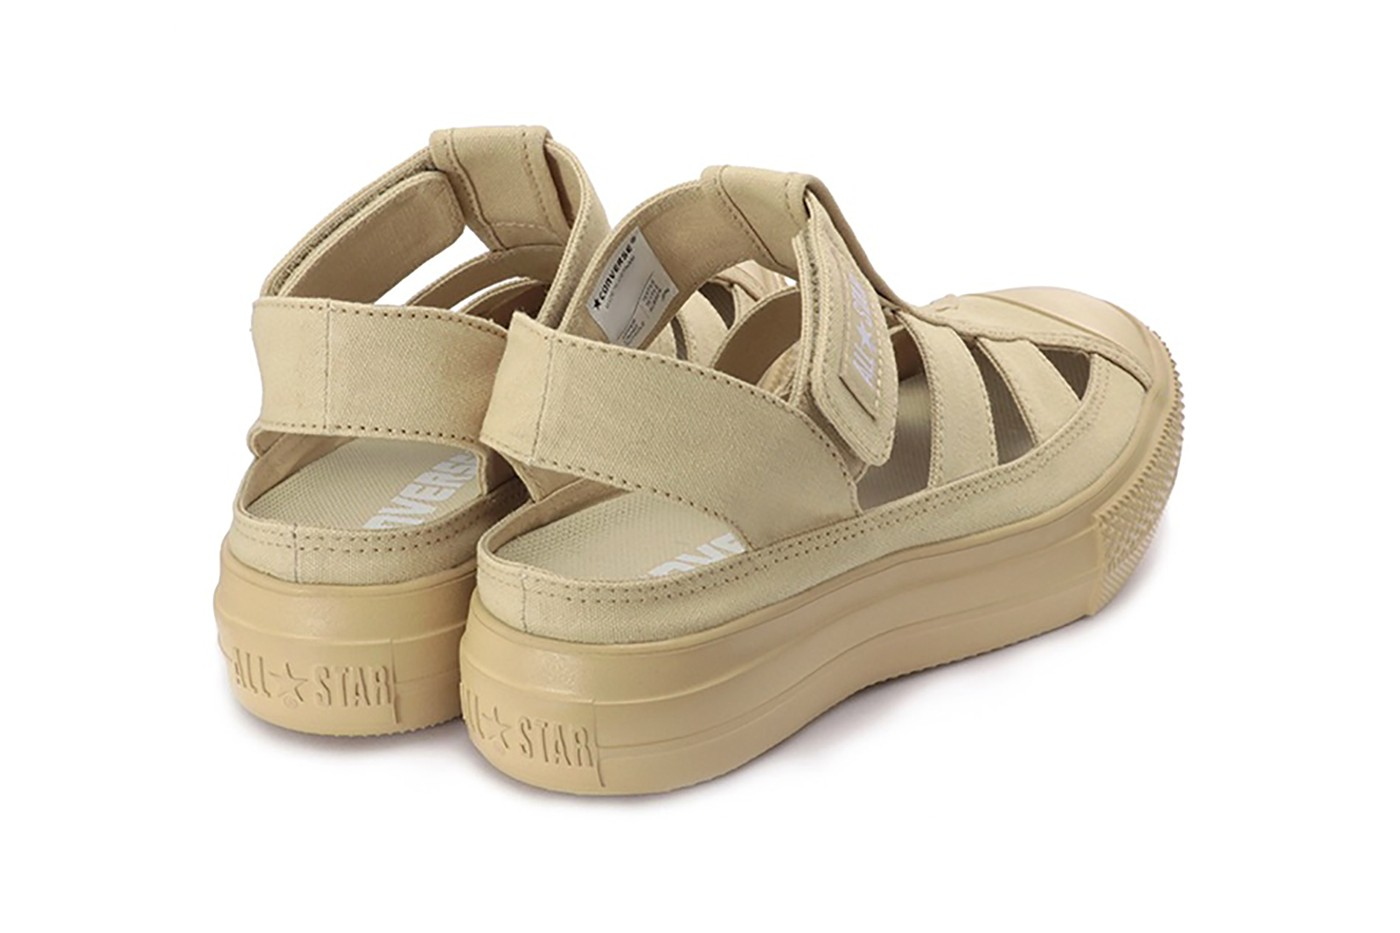 converse all star light plts gladiator ox sneakers sandals